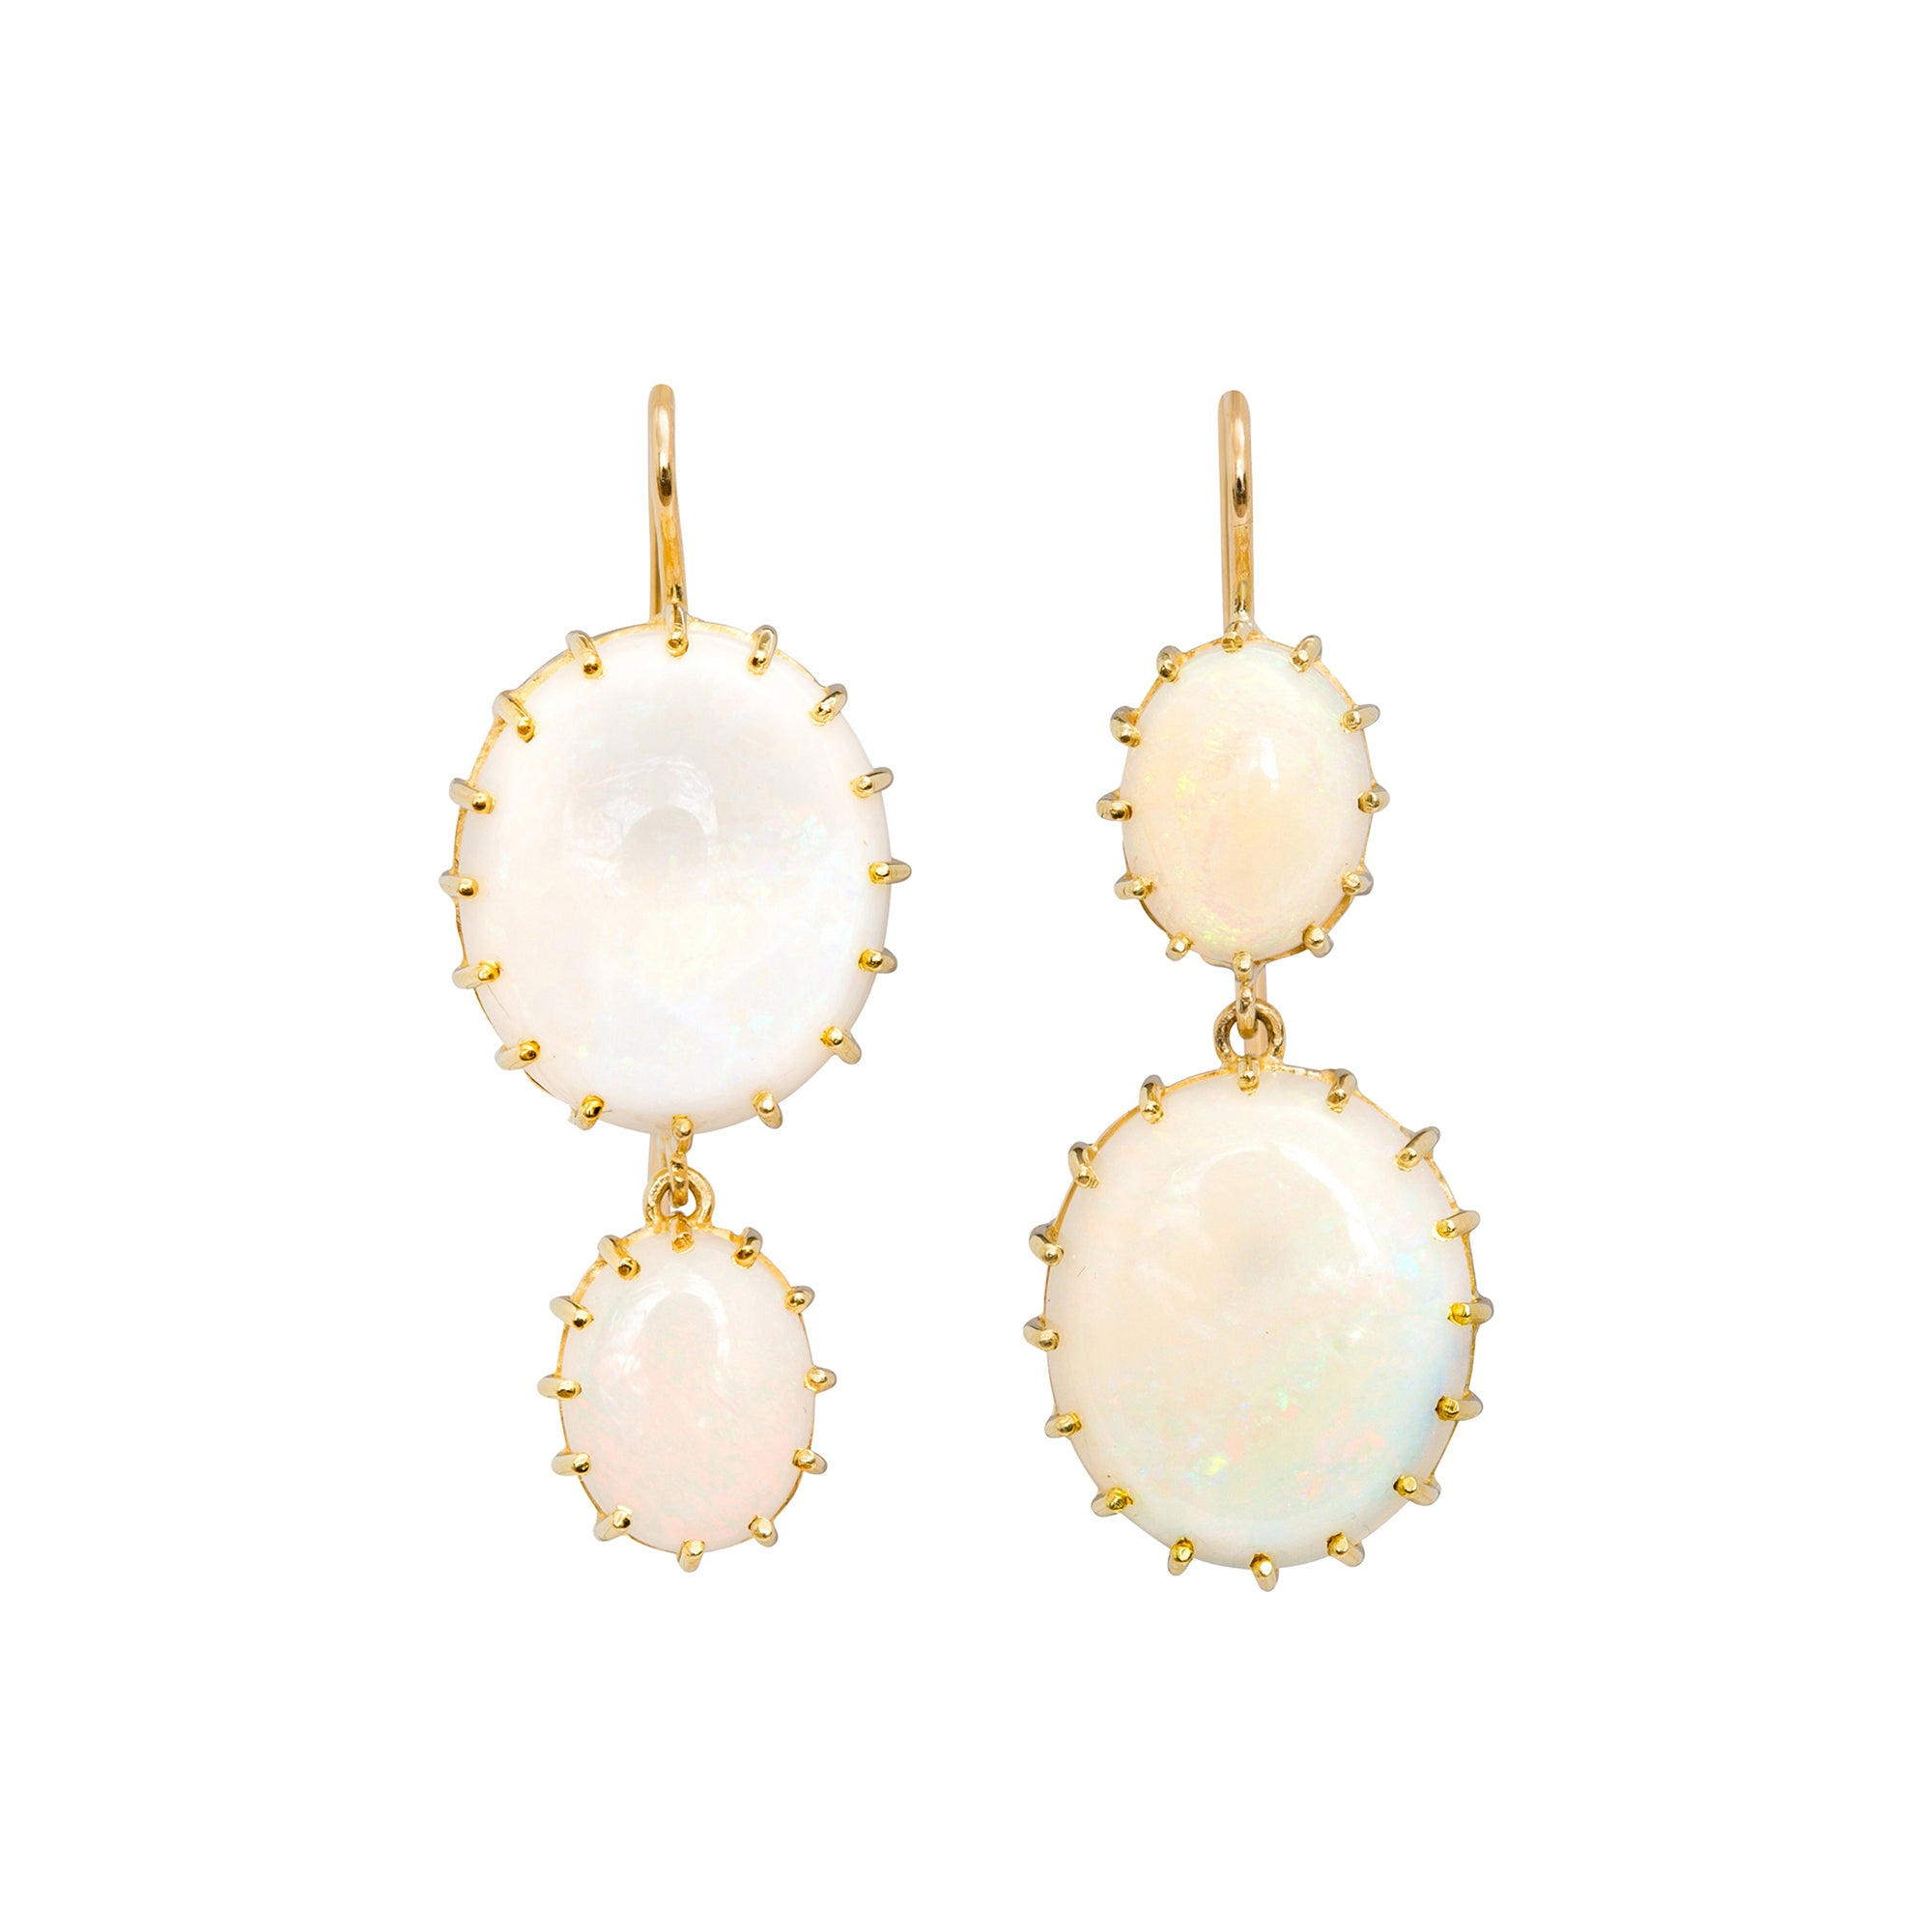 Opal Earrings by Renee Lewis for Broken English Jewelry